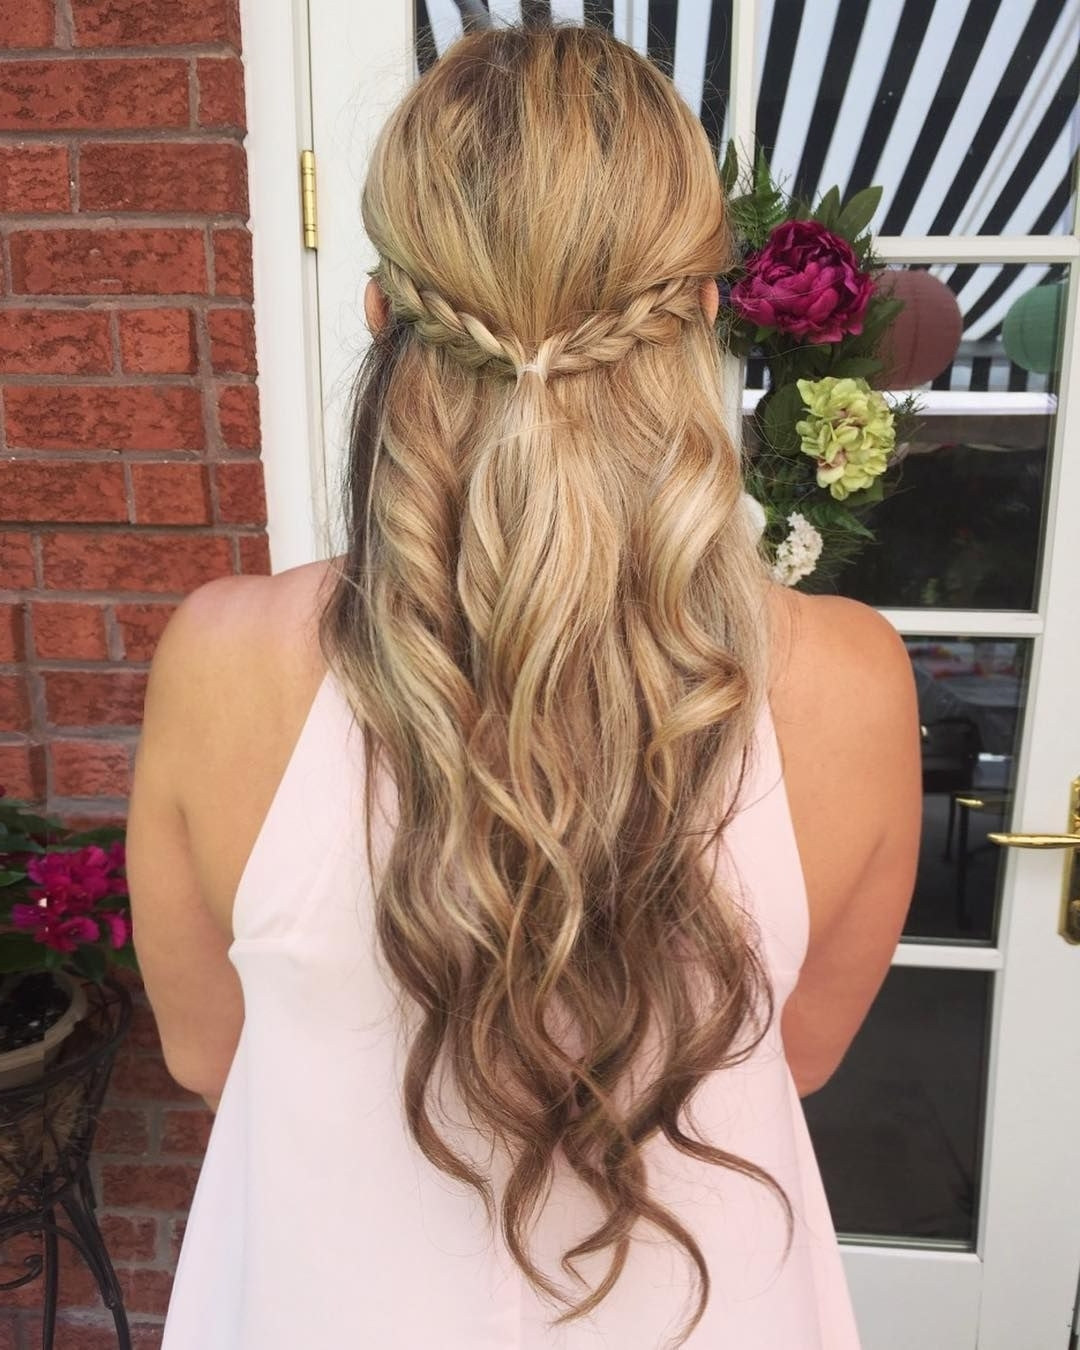 Braid Crown, Boho Hair, Loose Curls, Blonde Hair, Beach Waves Inside Most Up To Date Braided Crown With Loose Curls (View 4 of 15)